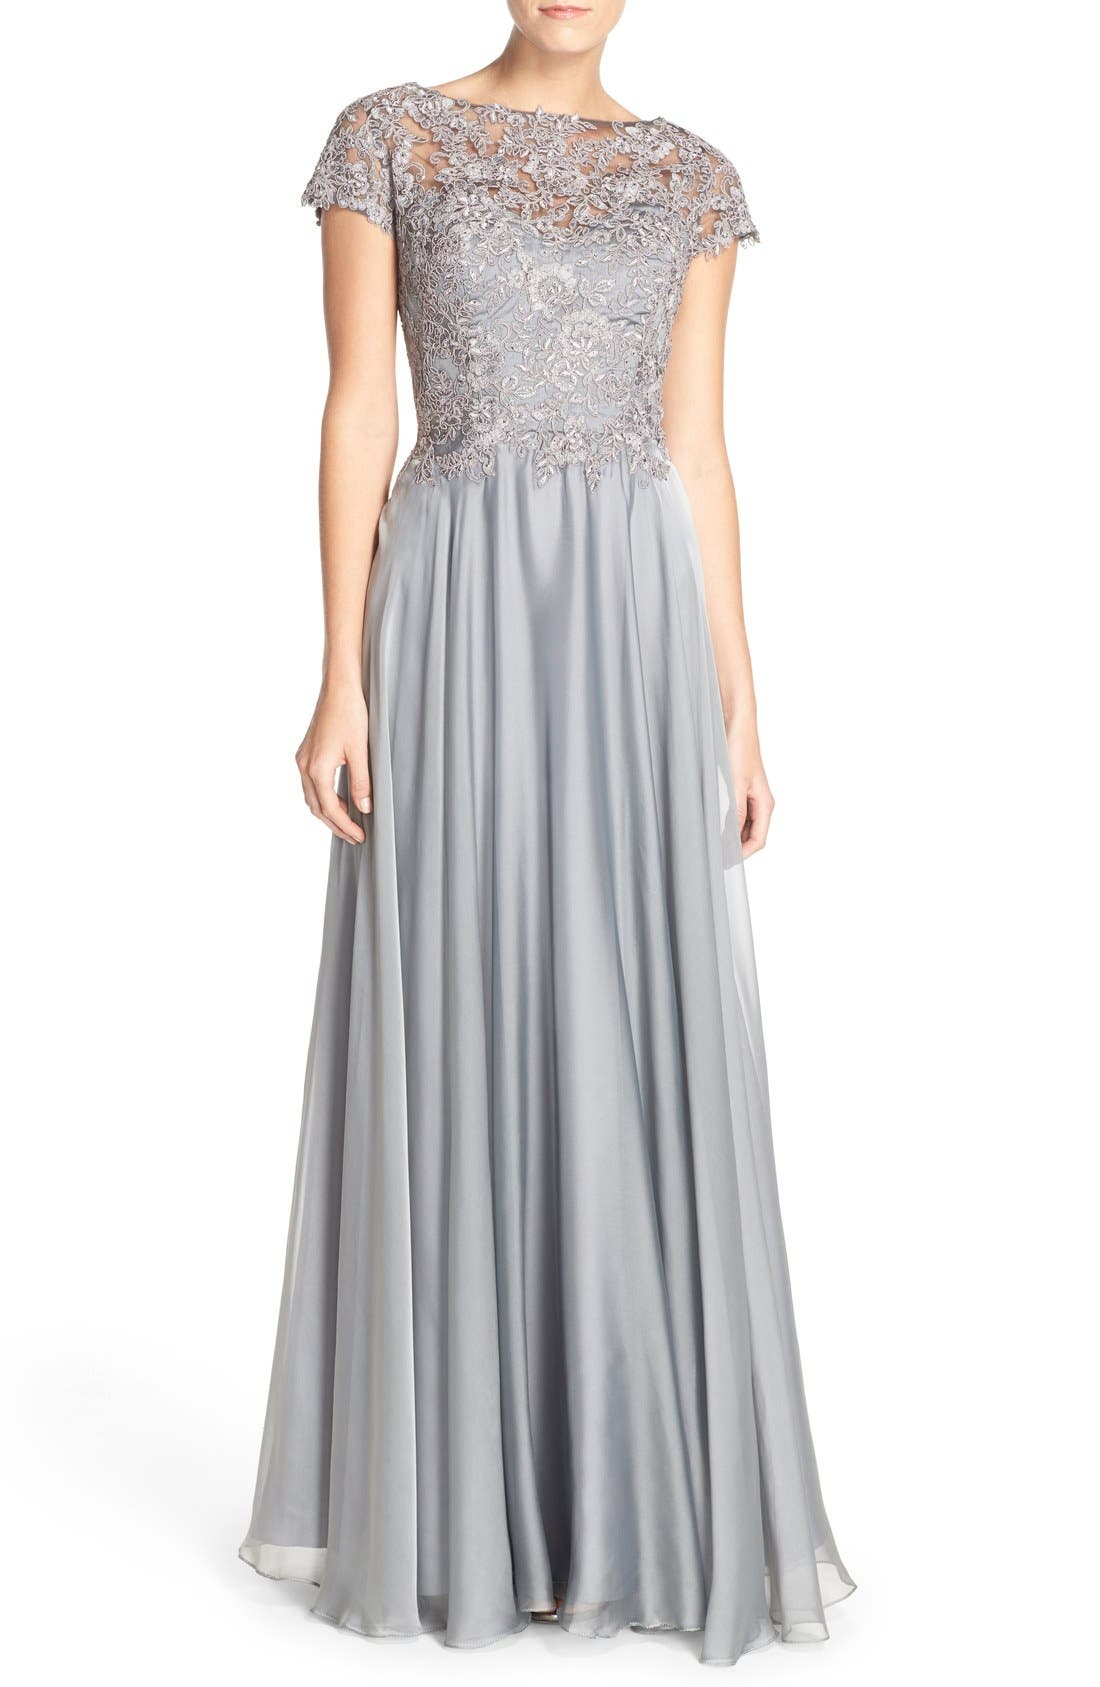 1930s Dresses | 30s Art Deco Dress Womens La Femme Embellished Lace  Satin Ballgown Size 20 similar to 20W-22W - Grey $450.00 AT vintagedancer.com